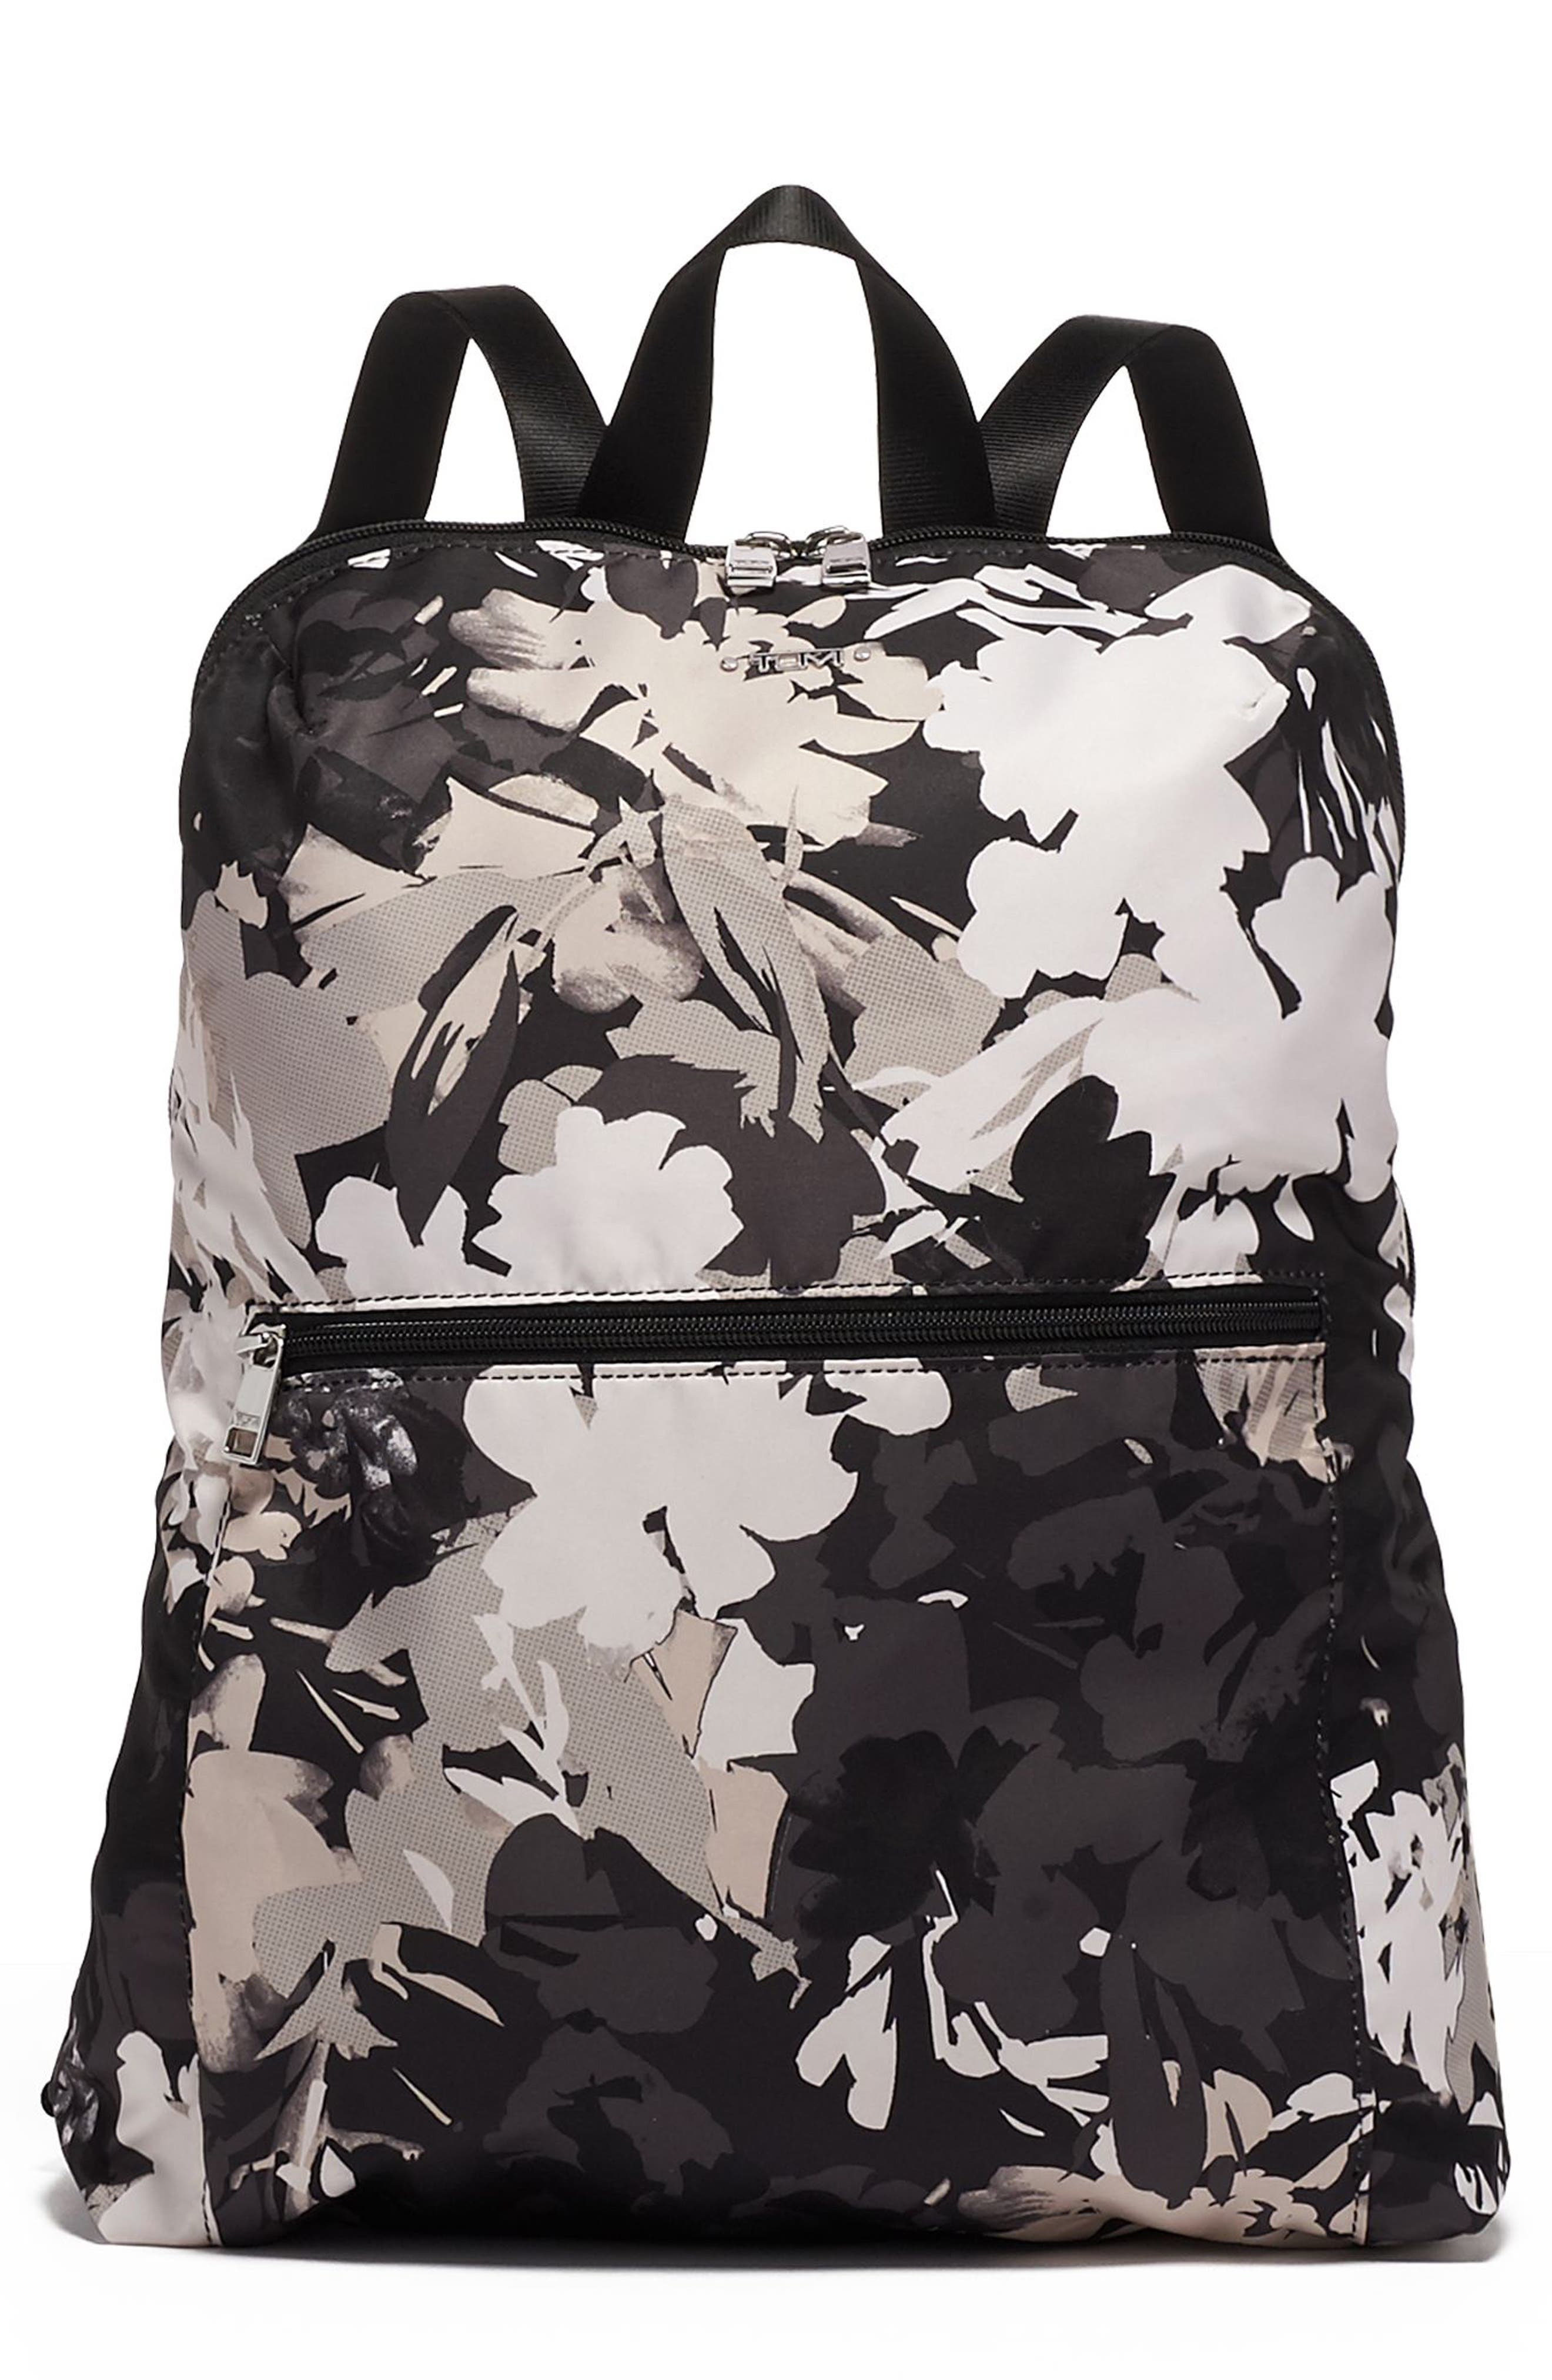 TUMI Voyageur - Just in Case<sup>®</sup> Nylon Travel Backpack, Main, color, AFRICAN FLORAL